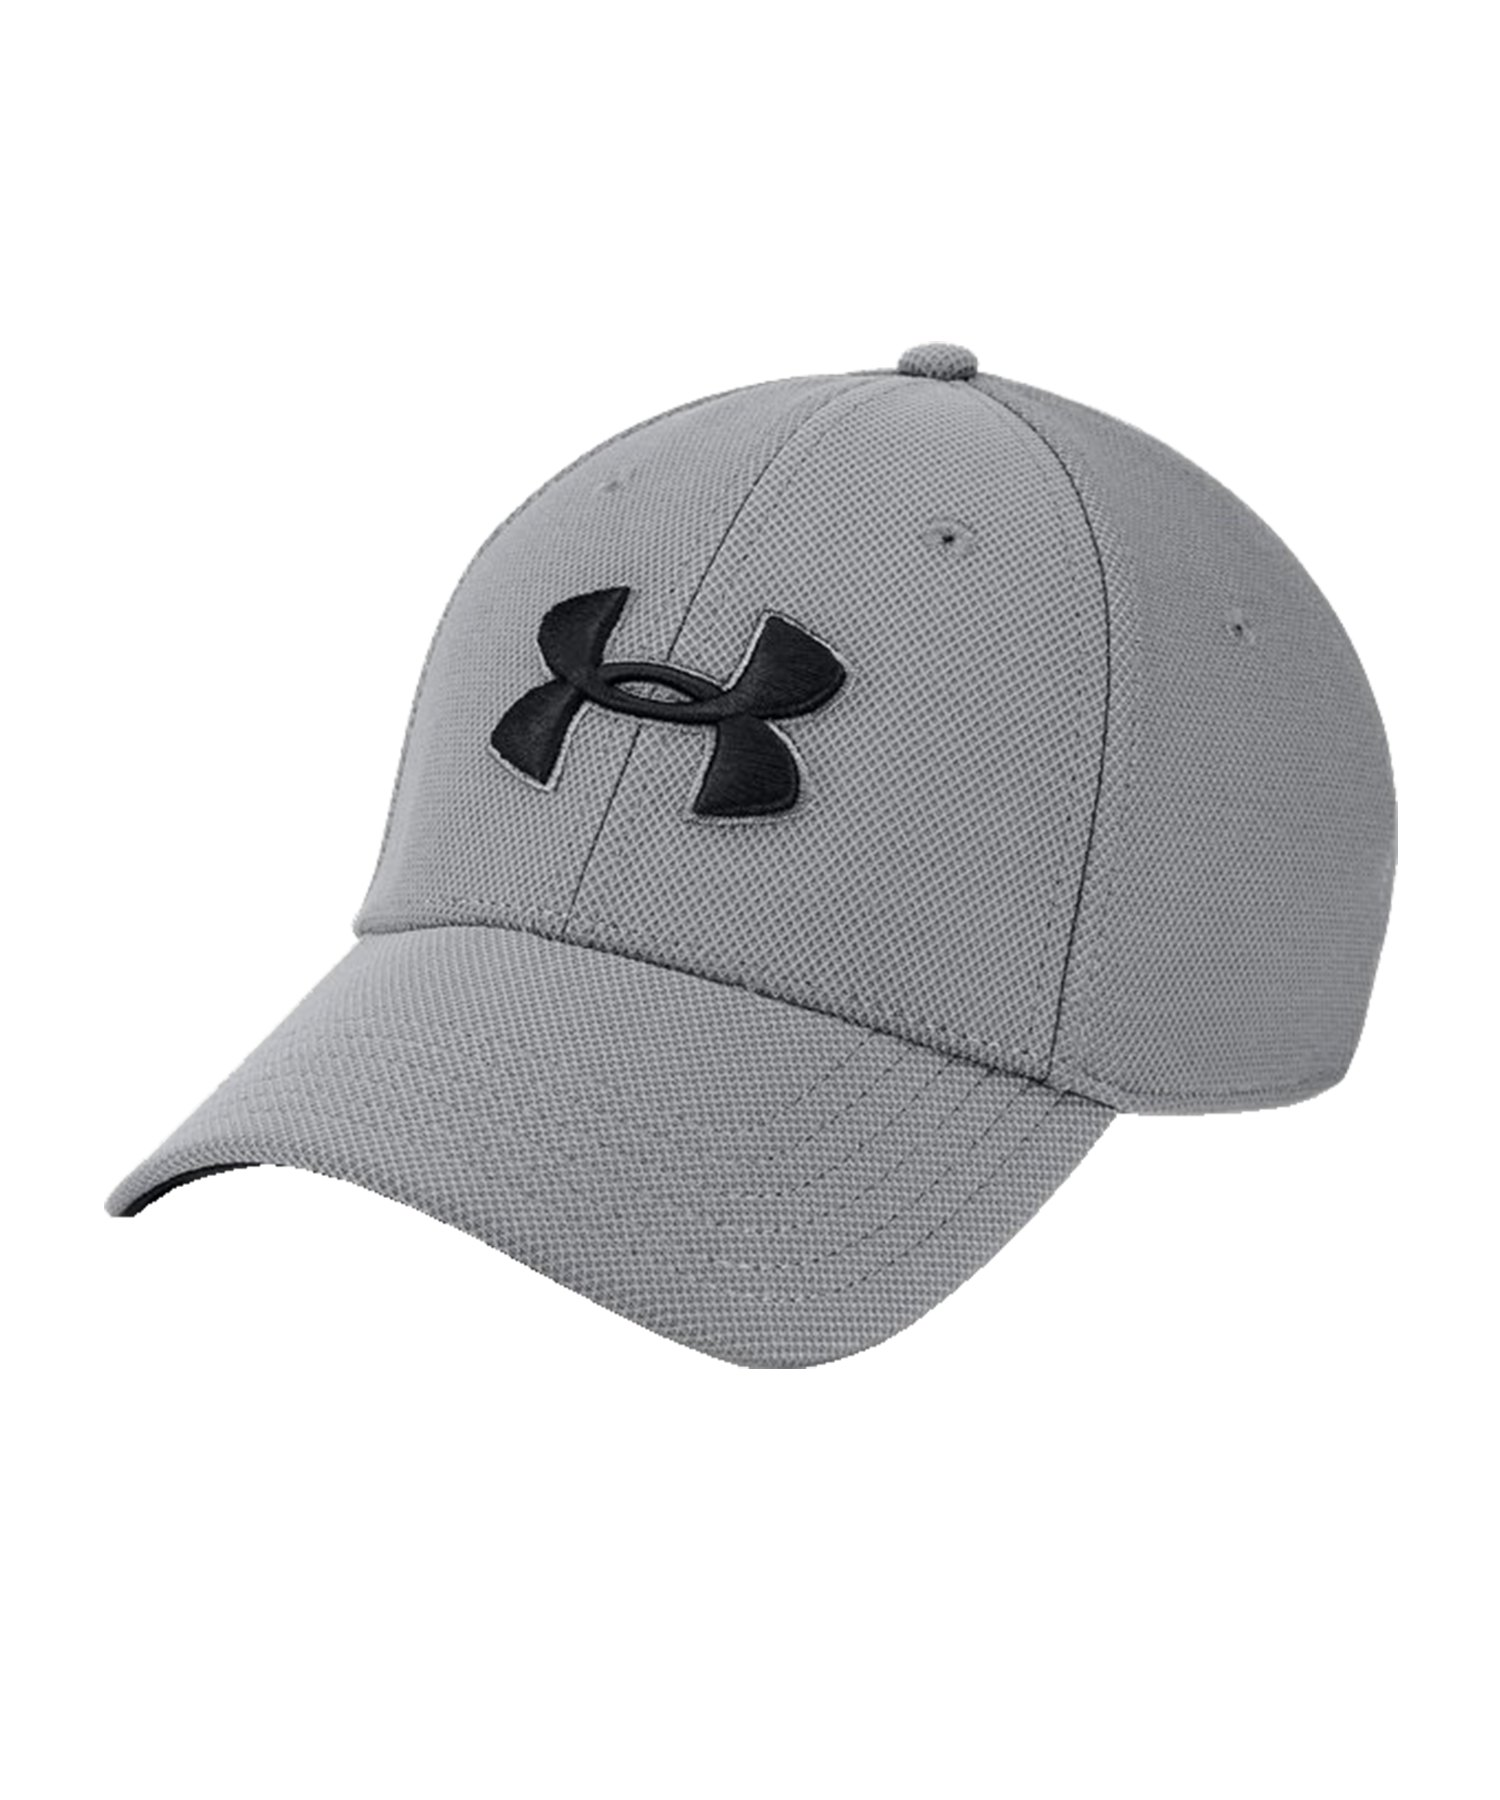 Under Armour Blitzing 3.0 Cap Grau F040 - Grau